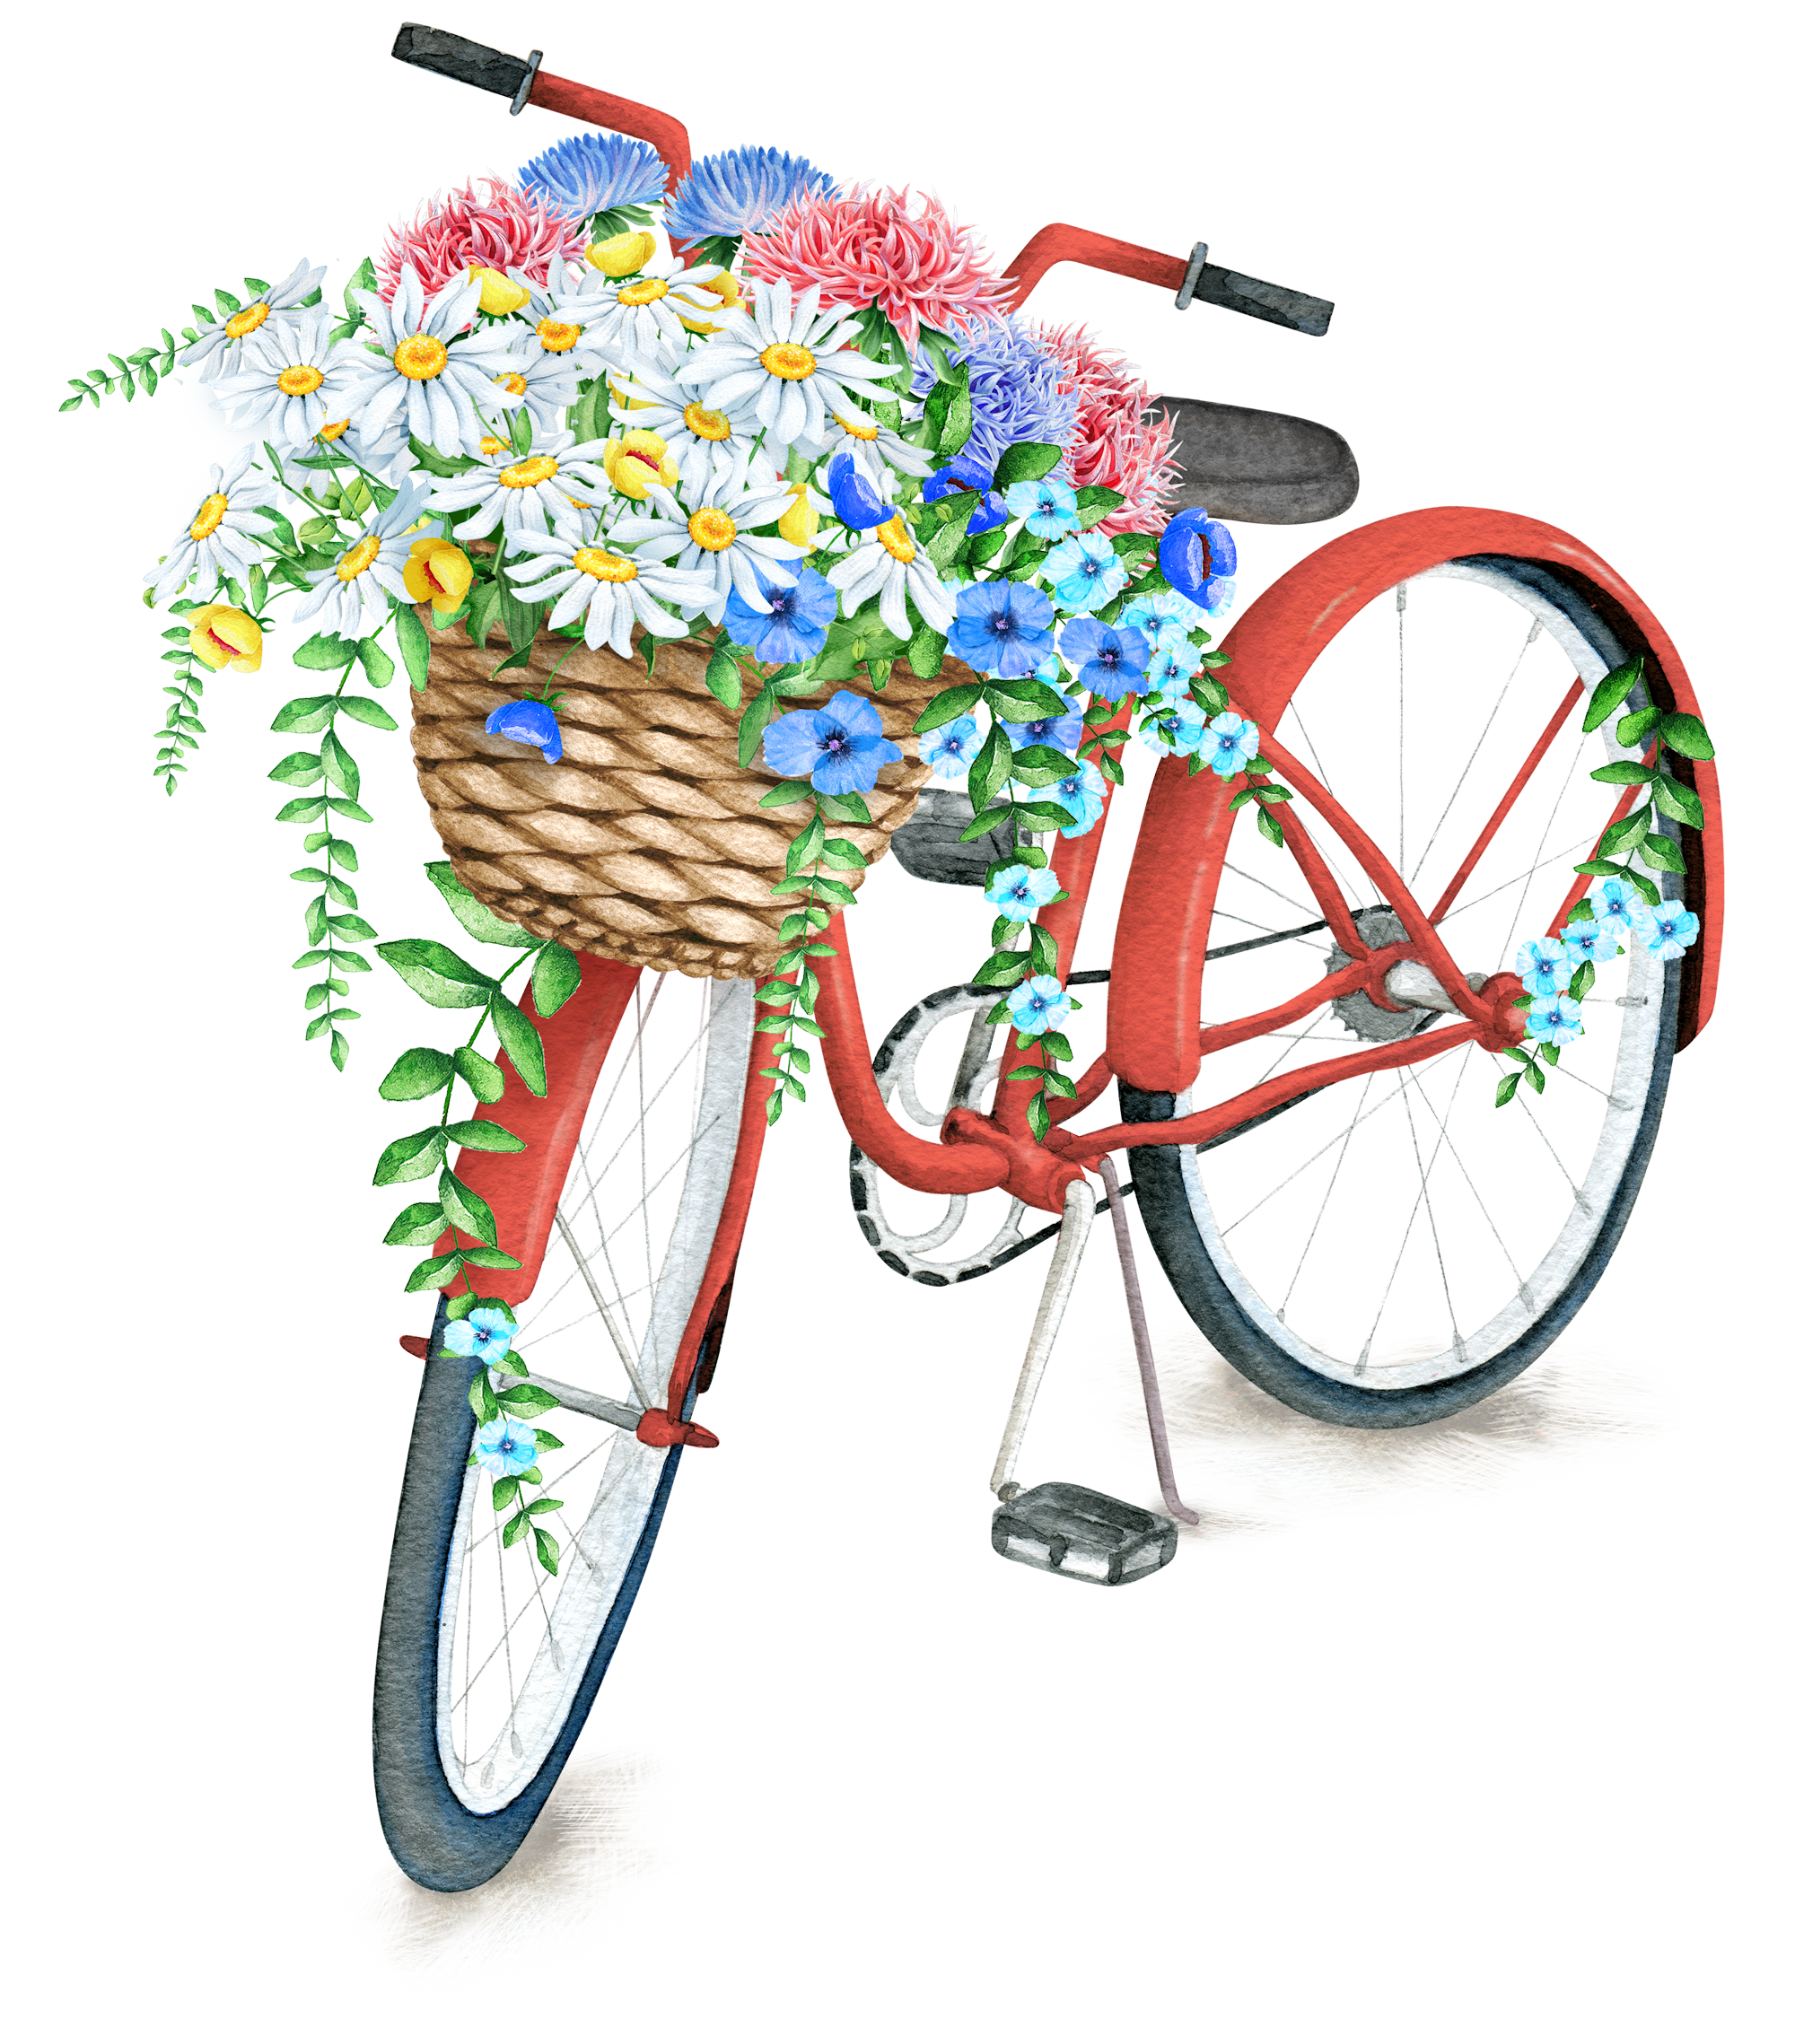 Pin by on pinterest. Clipart bicycle spring